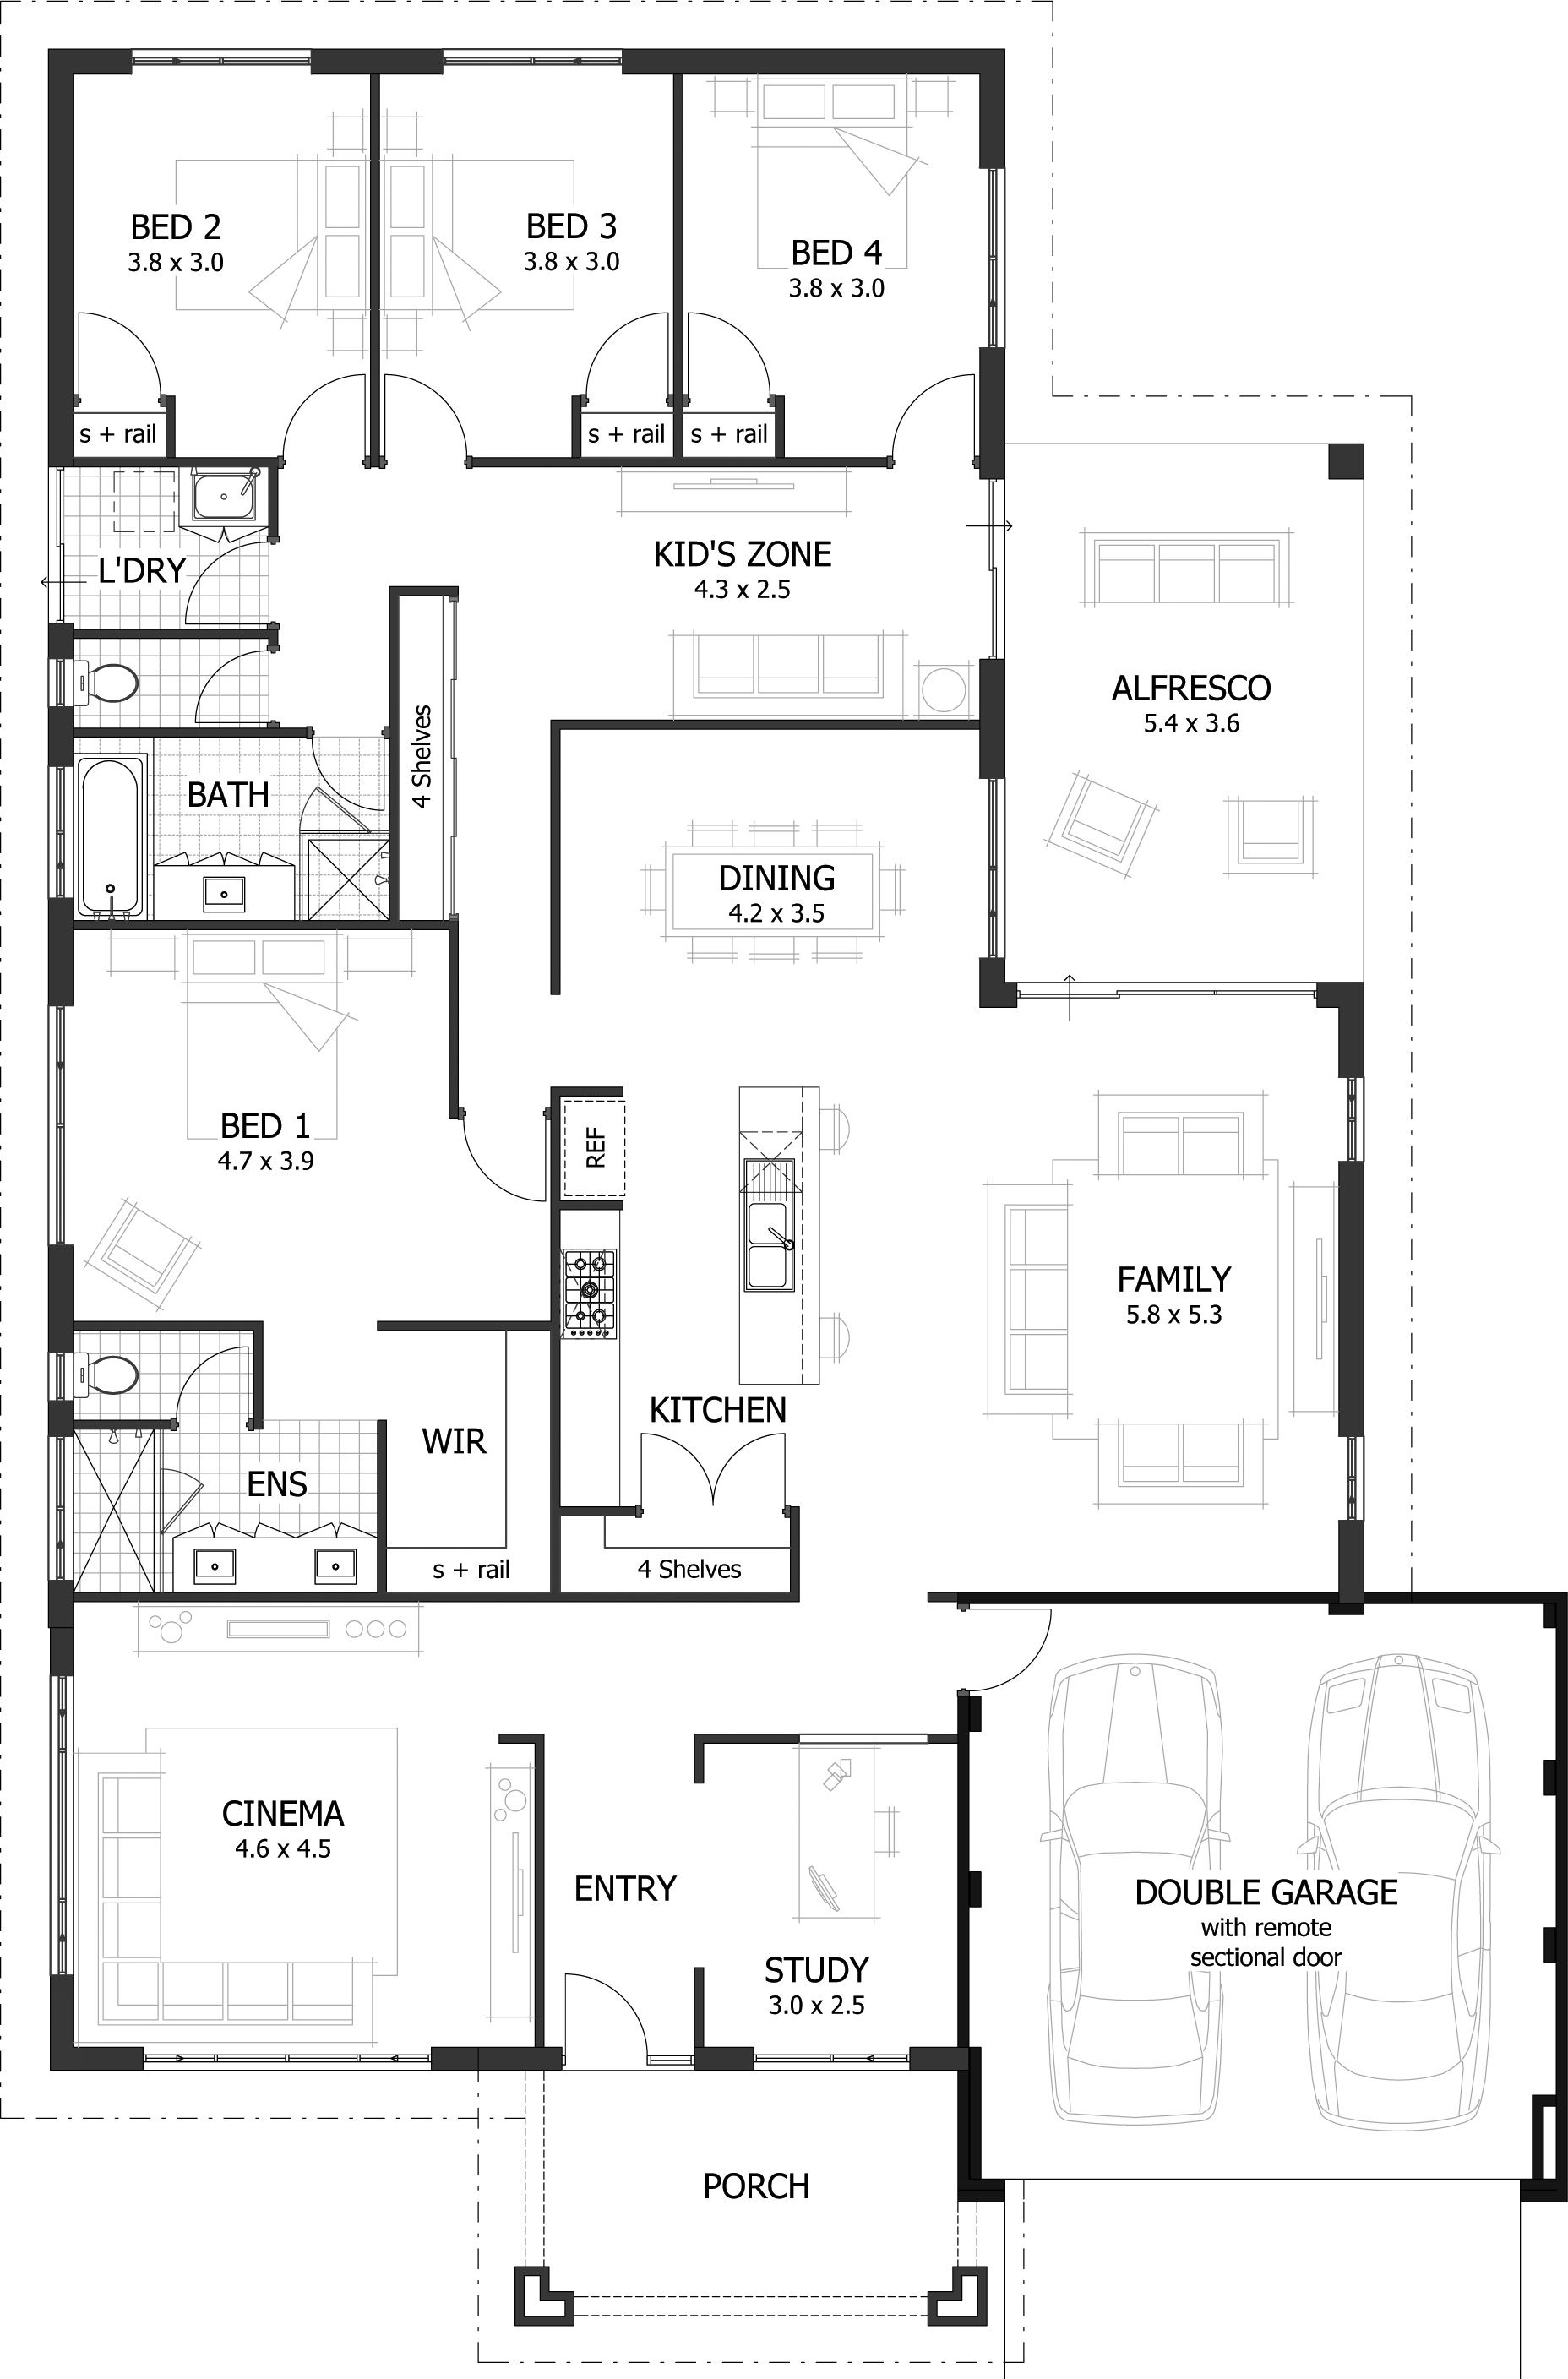 4 Bedroom House Plans Home Designs Celebration Homes Floorplans Pinterest Celebrations